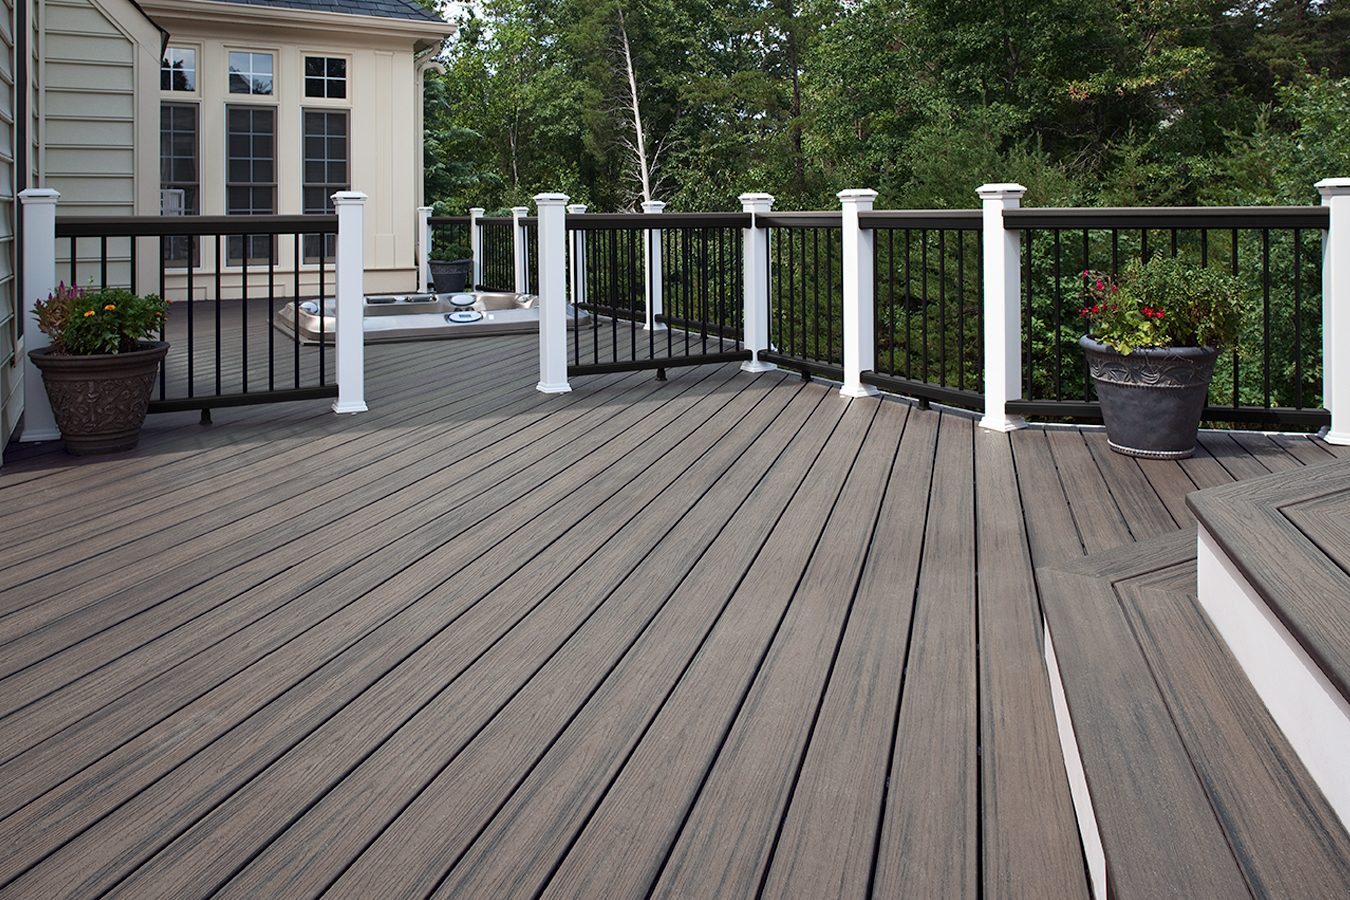 Trex transcend new color island mist in stock at kuiken for Composite decking and railing